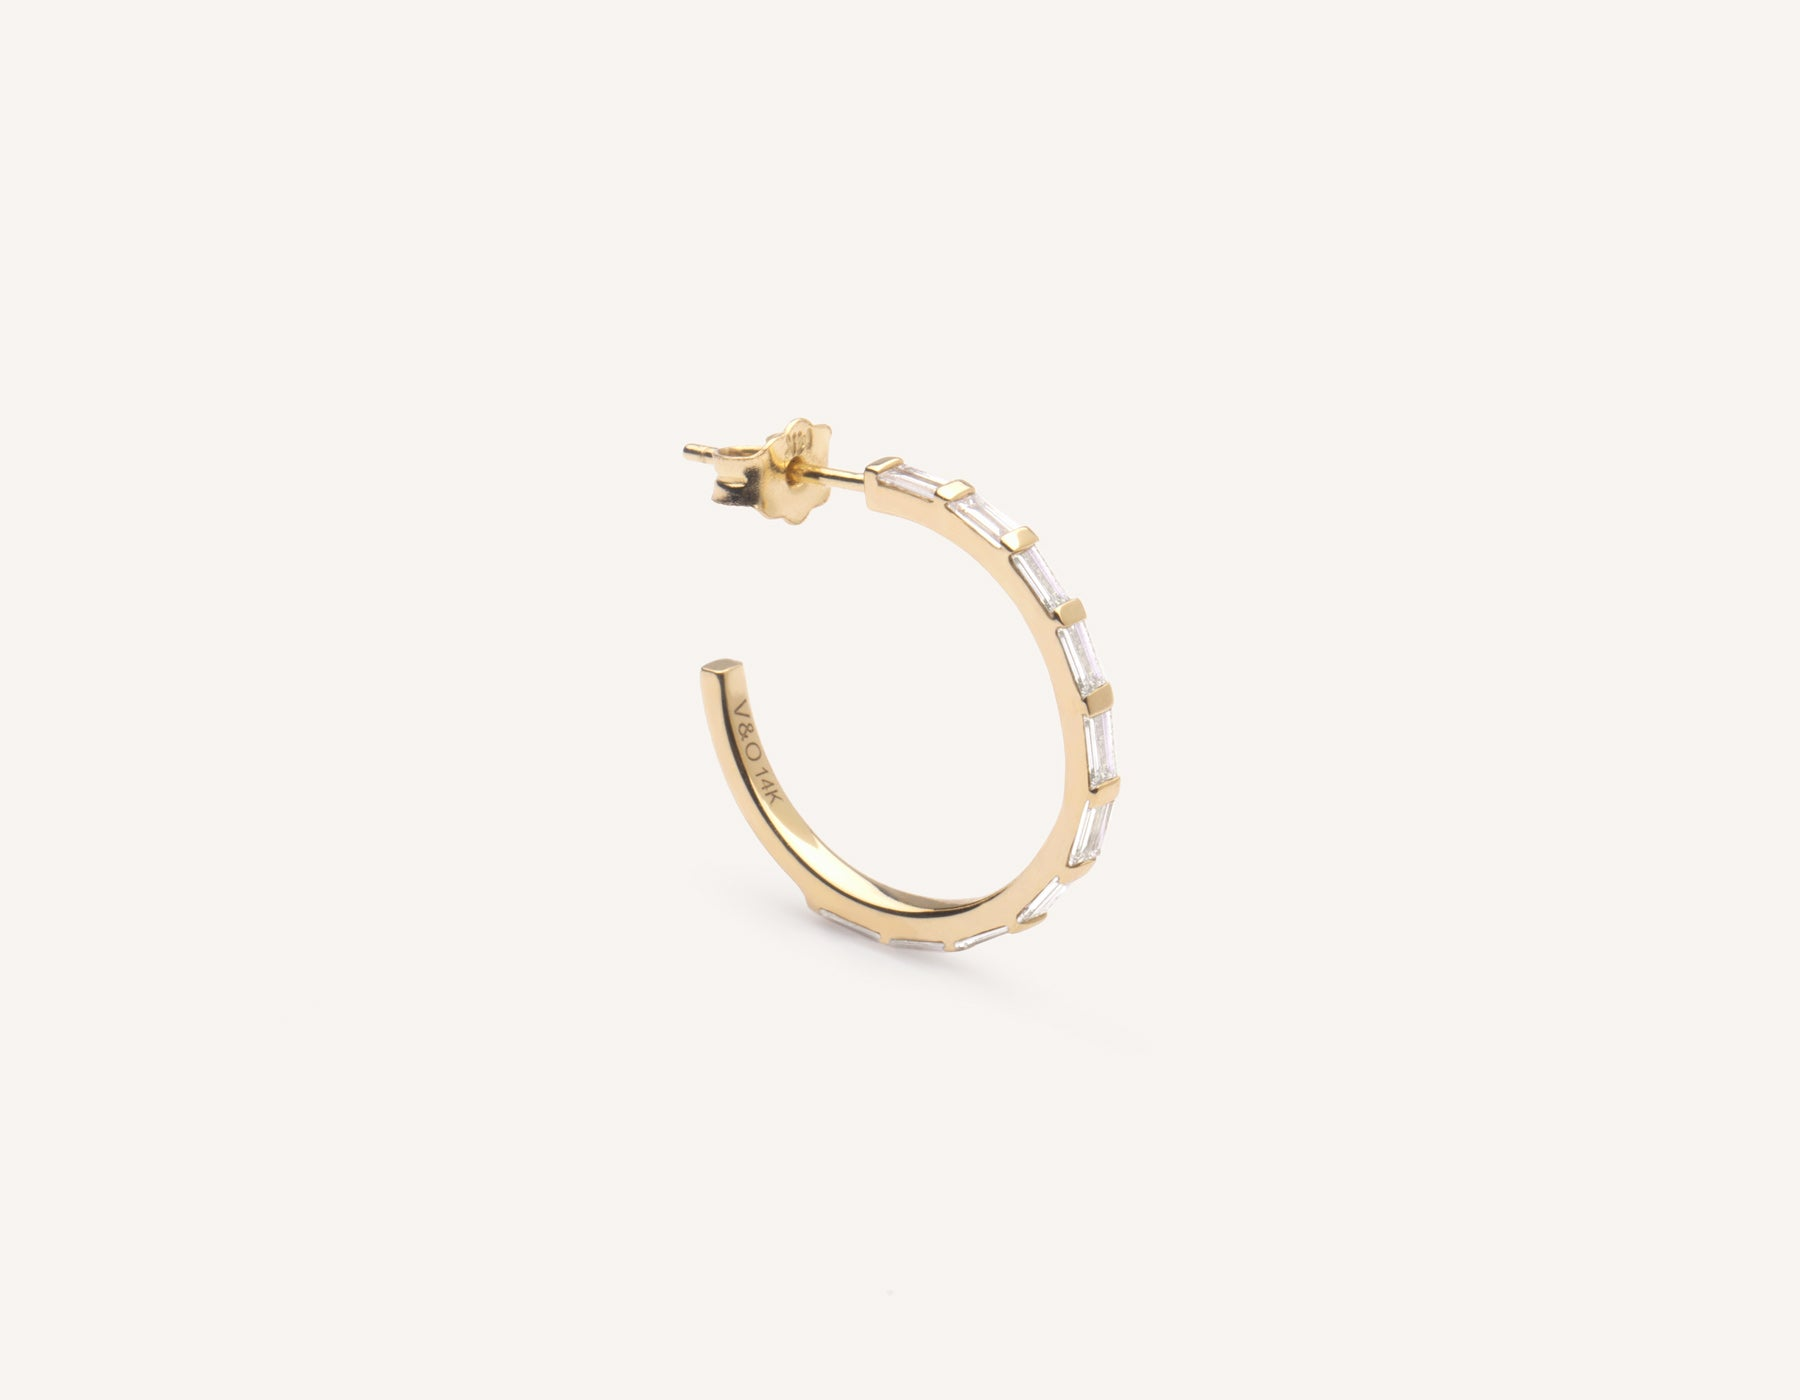 Vrai & Oro simple classic 14k solid gold Baguette Pave Diamond Hoop earrings, 14K Yellow Gold